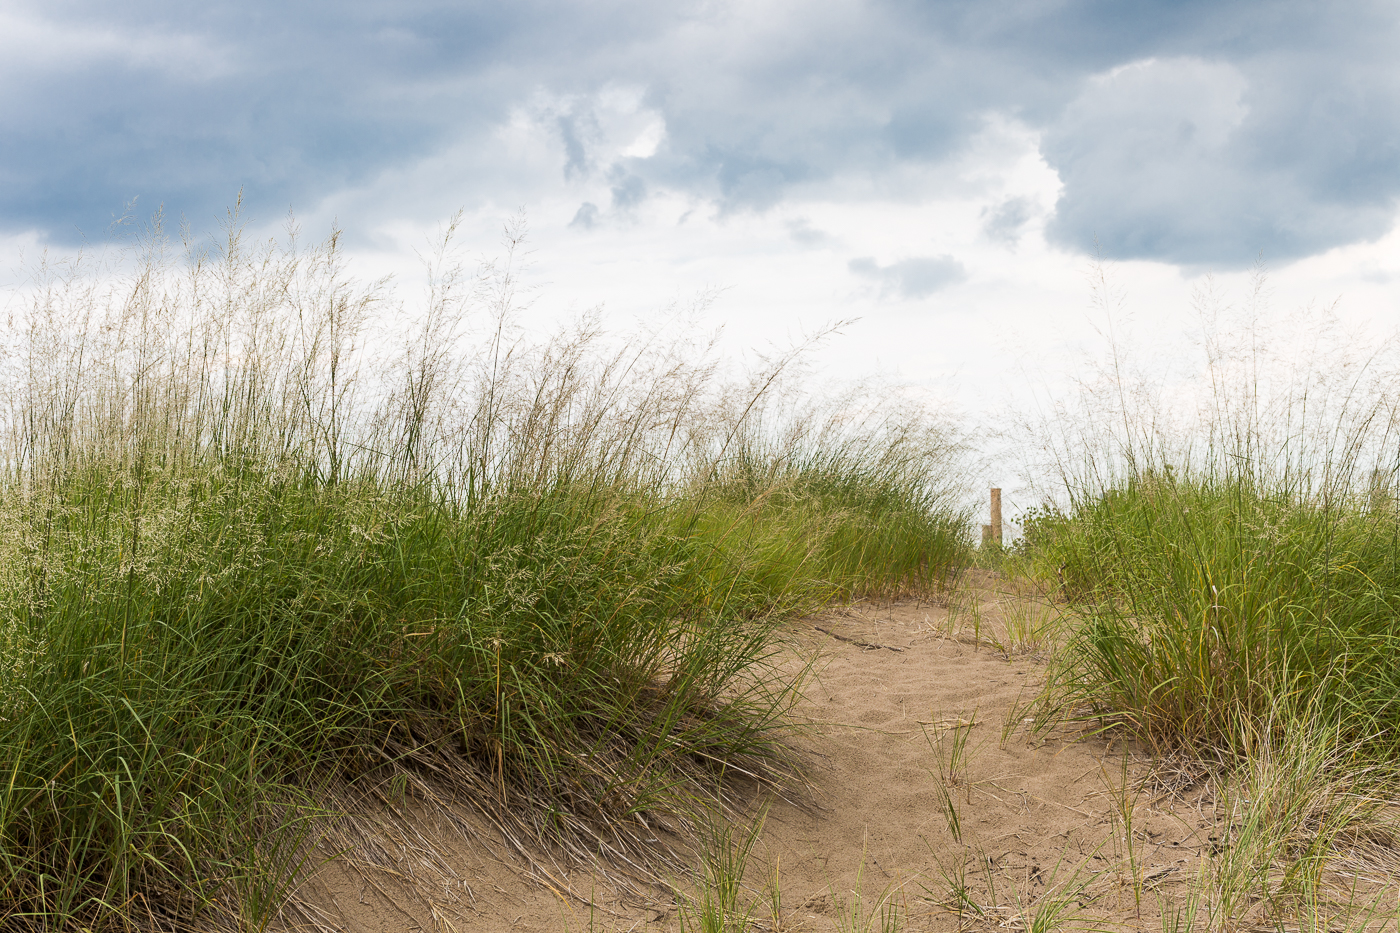 The Dunes of Ipperwash Beach